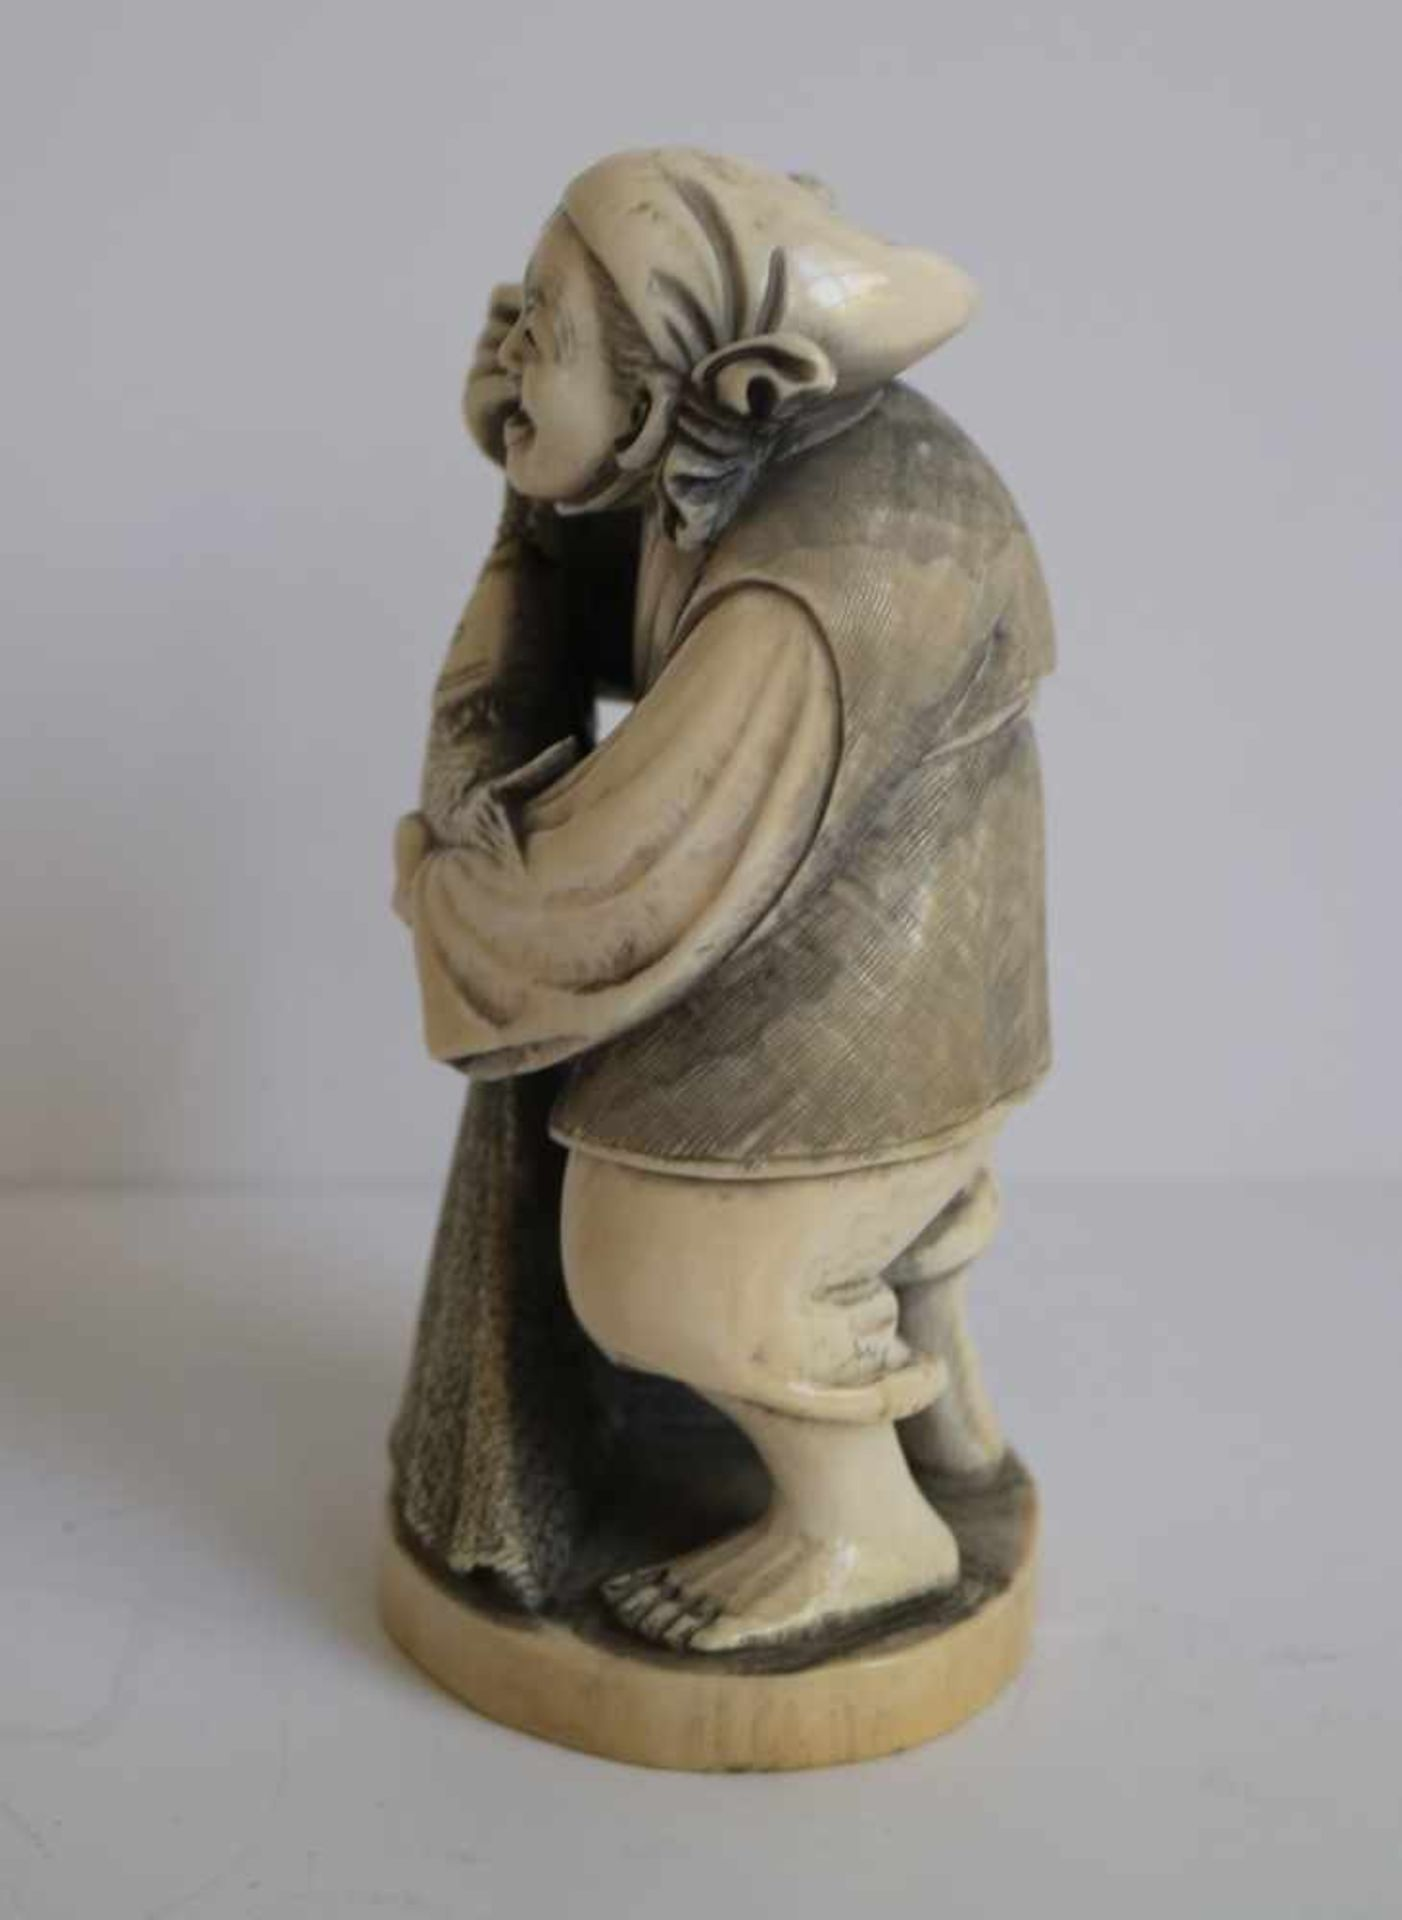 Los 708 - Ivory Okimono Depicting Ebisu holding his catch, Japan H 11,3 cm signed